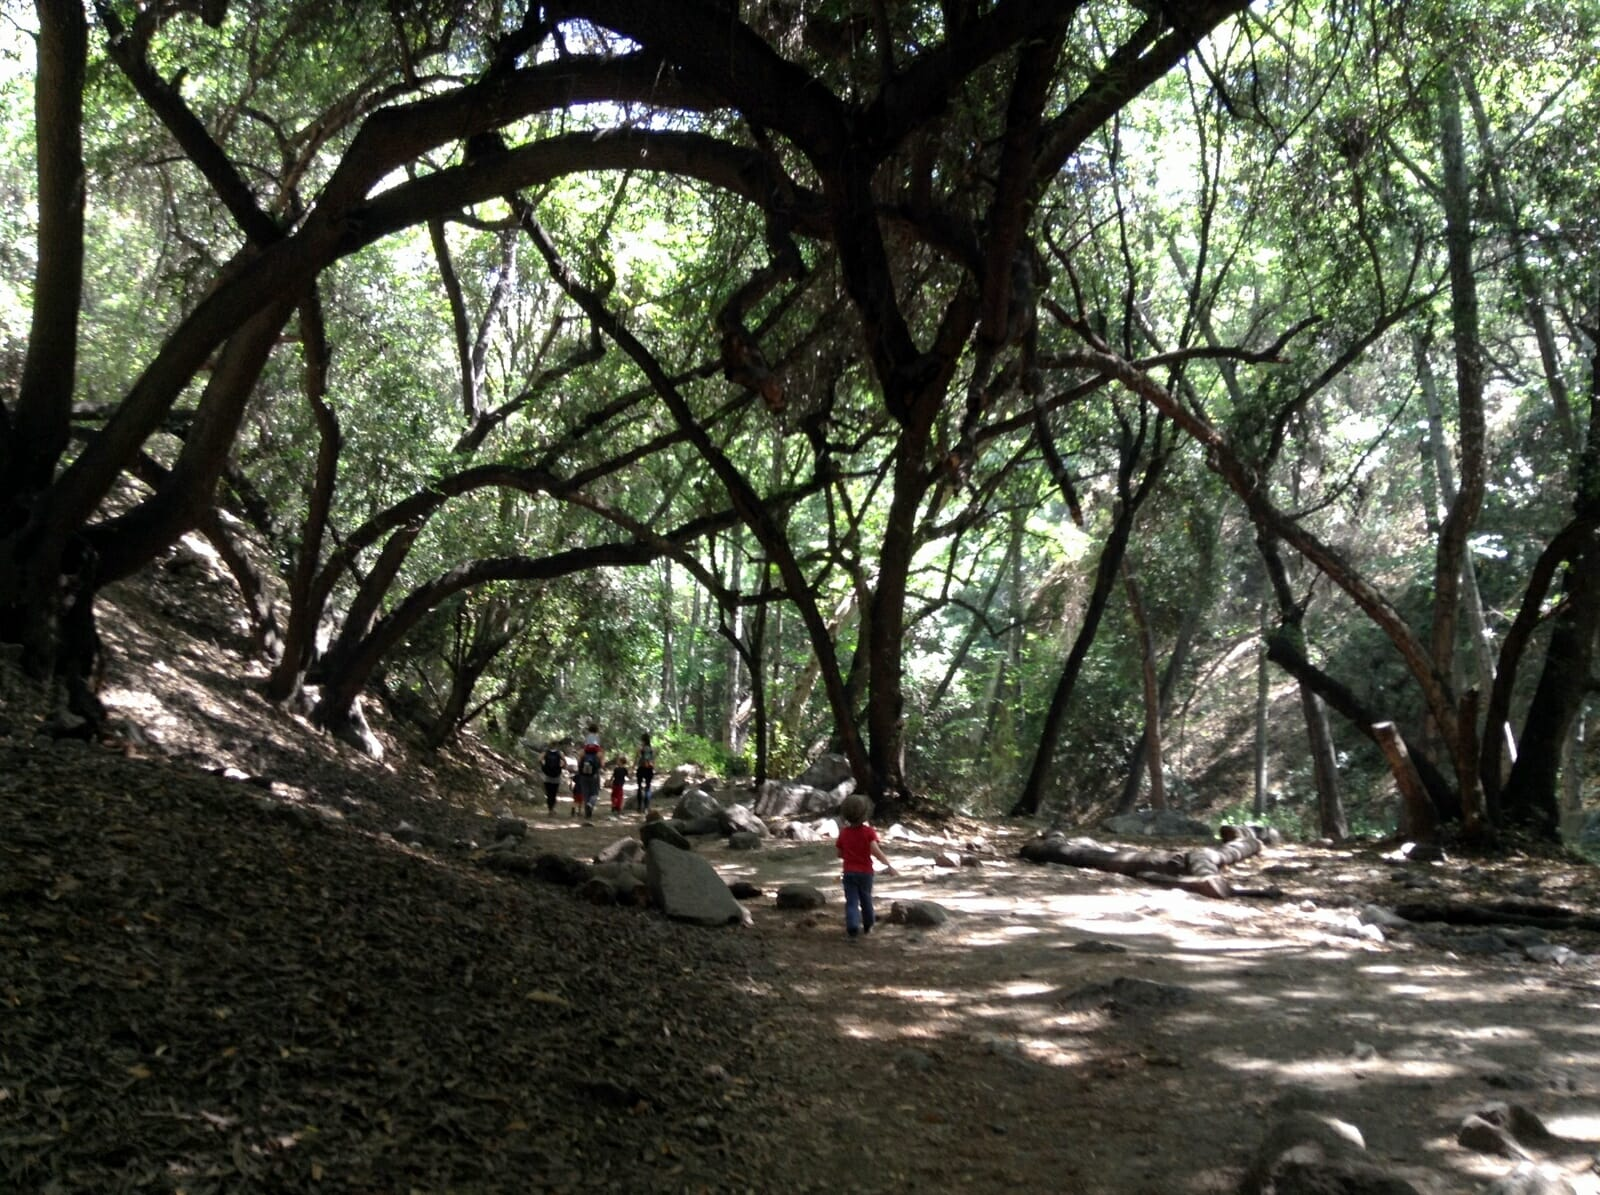 Monrovia Canyon Falls: The Perfect Family Hike